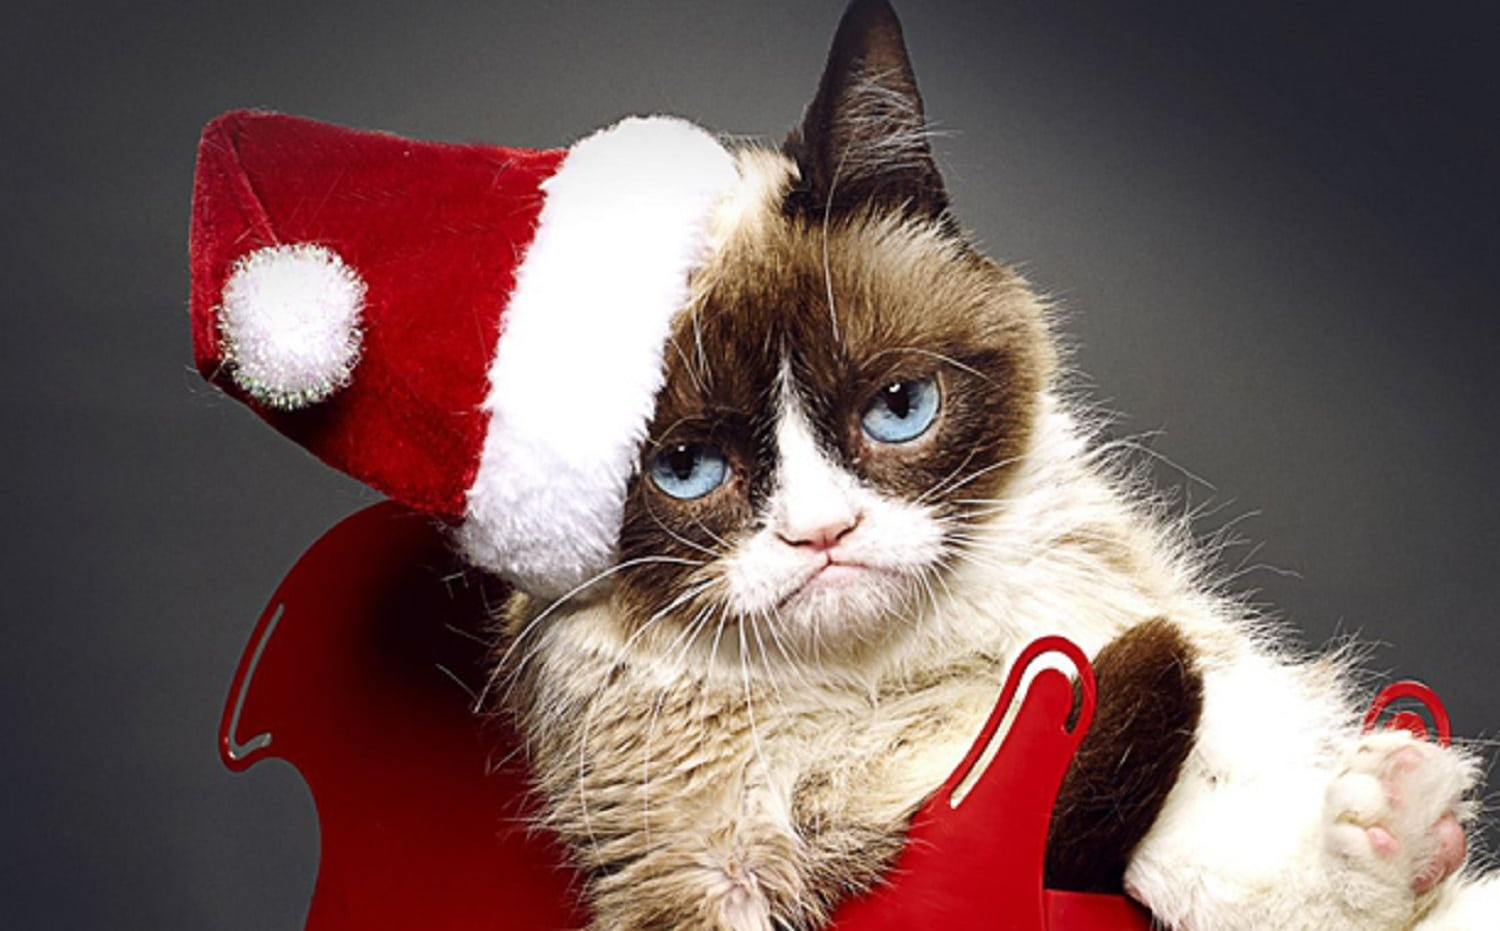 Grumpy Cat, Internet Celebrity and Movie Star, Dies at 7